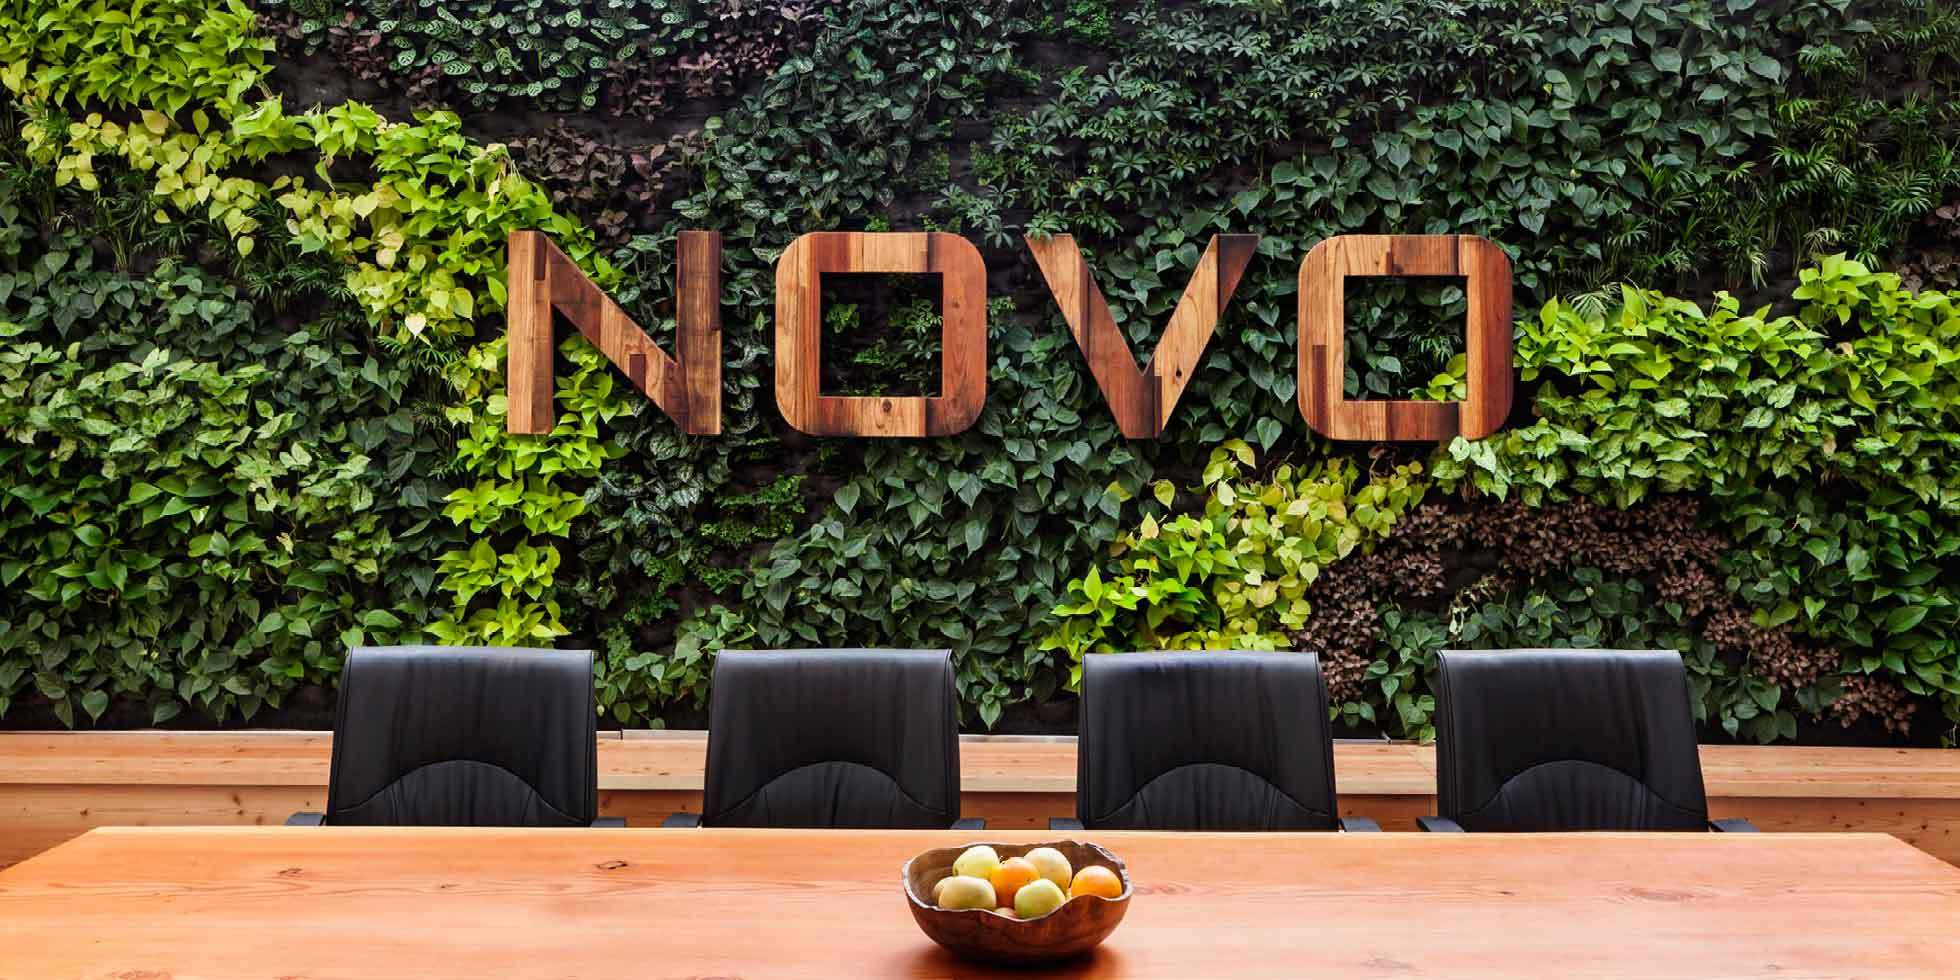 Novo Construction HQ Living Wall by Habitat Horticulture - View 2